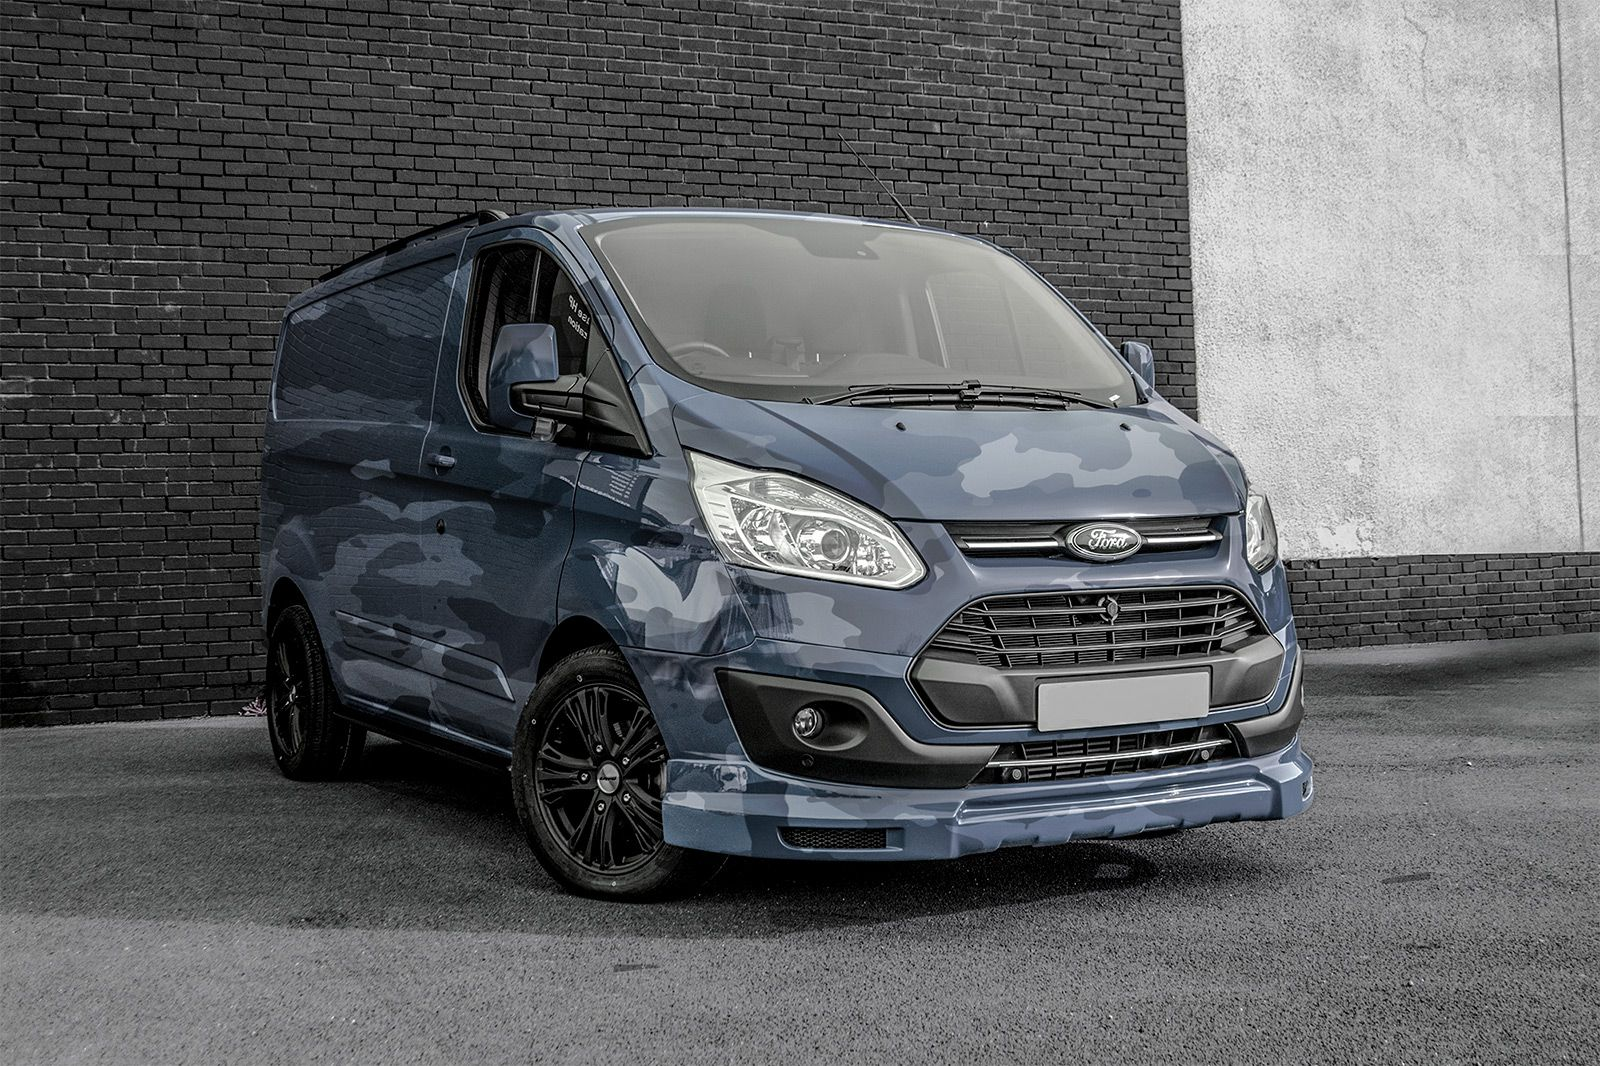 Vans For Sale Van Leasing Van Contract Hire Swiss Vans Ford Transit Transit Custom Cool Vans